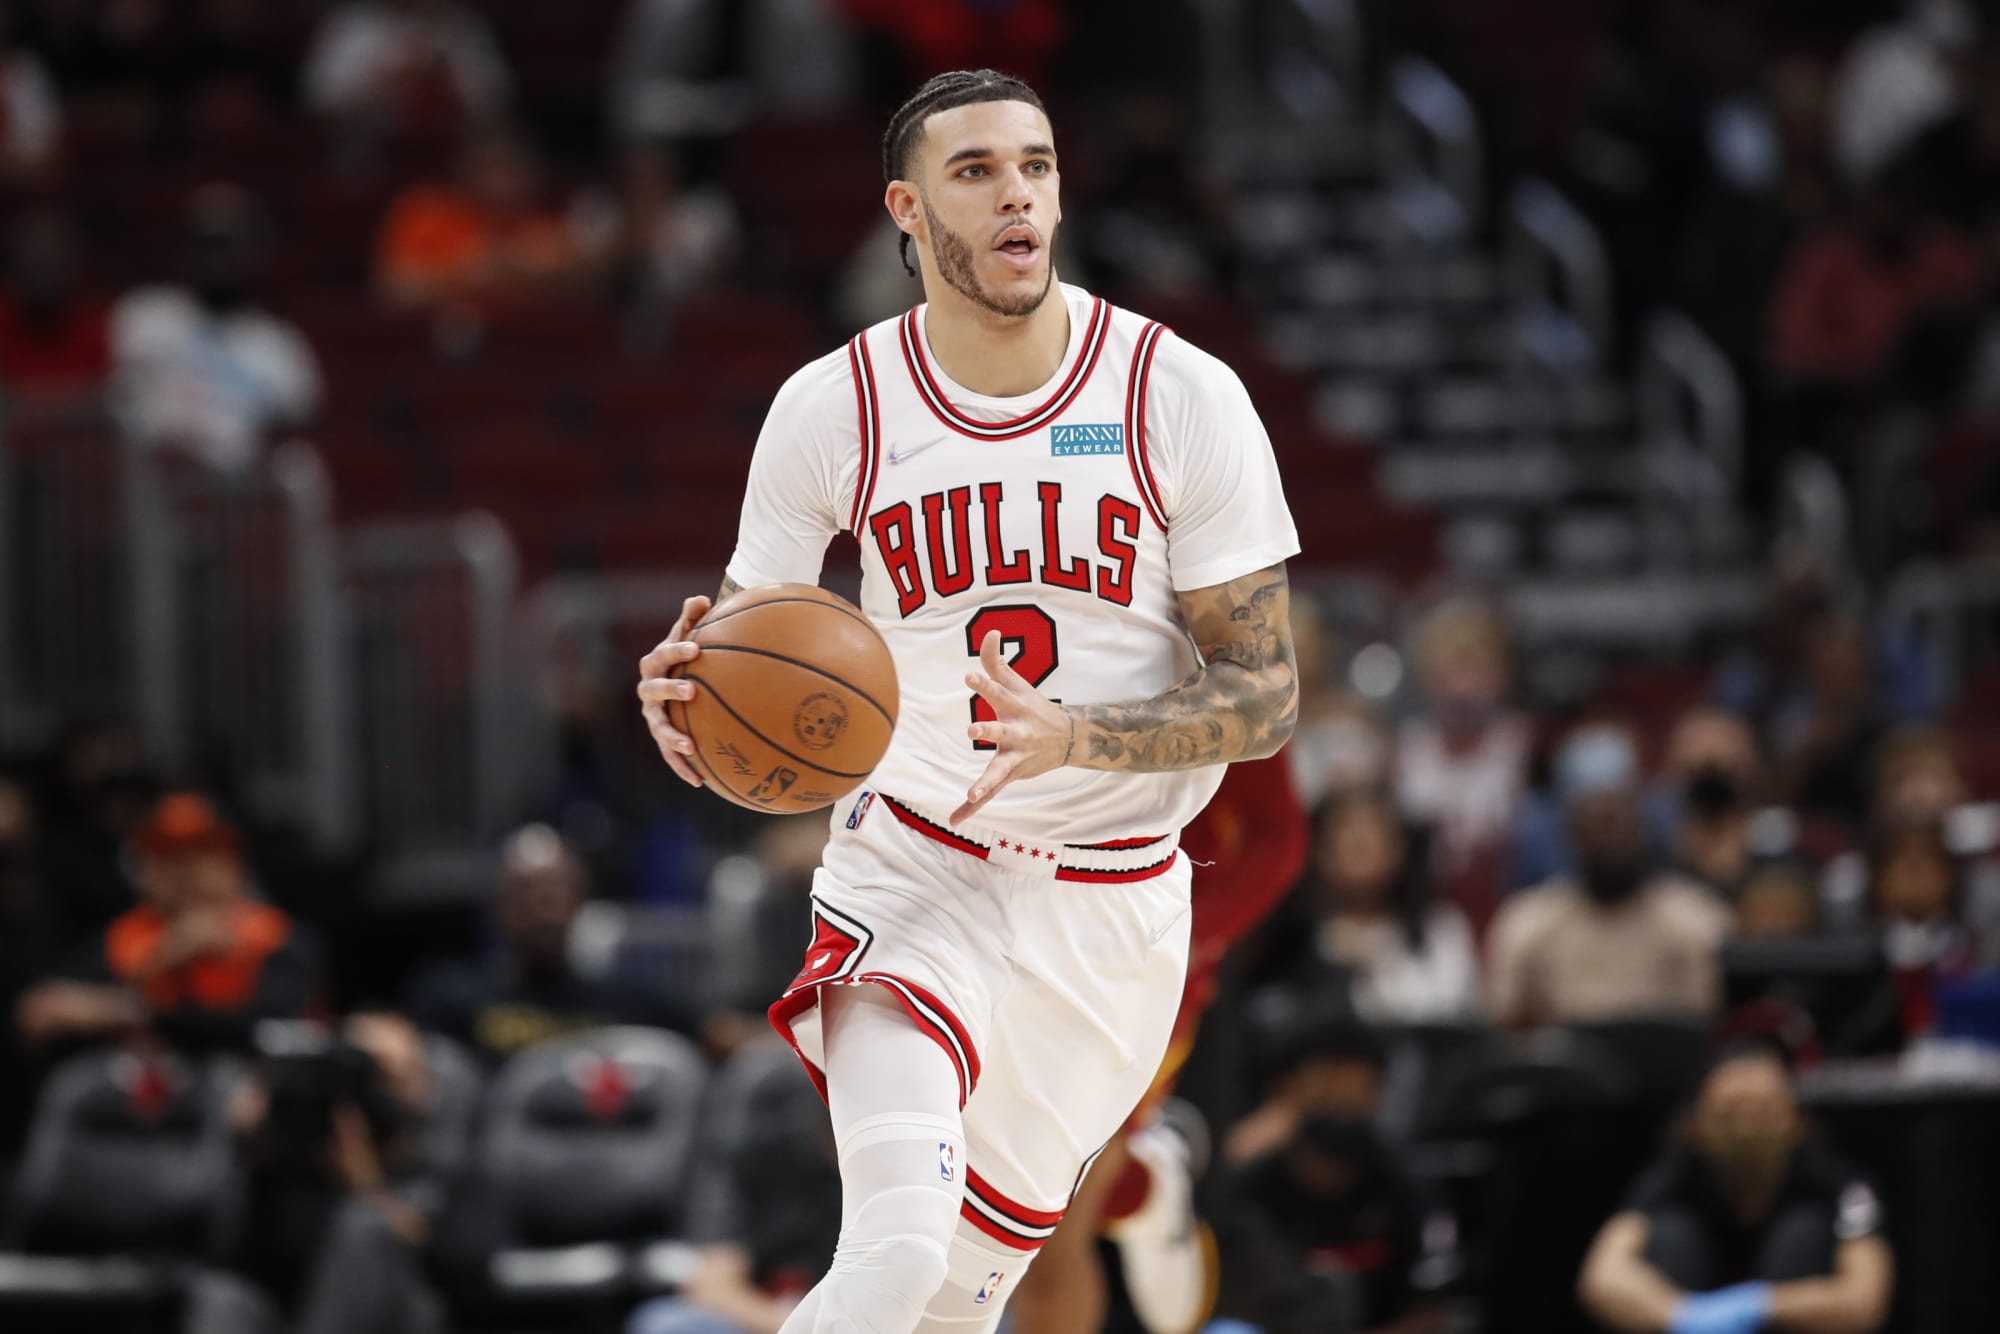 Chicago Bulls: Transition scoring a key part of early offensive success